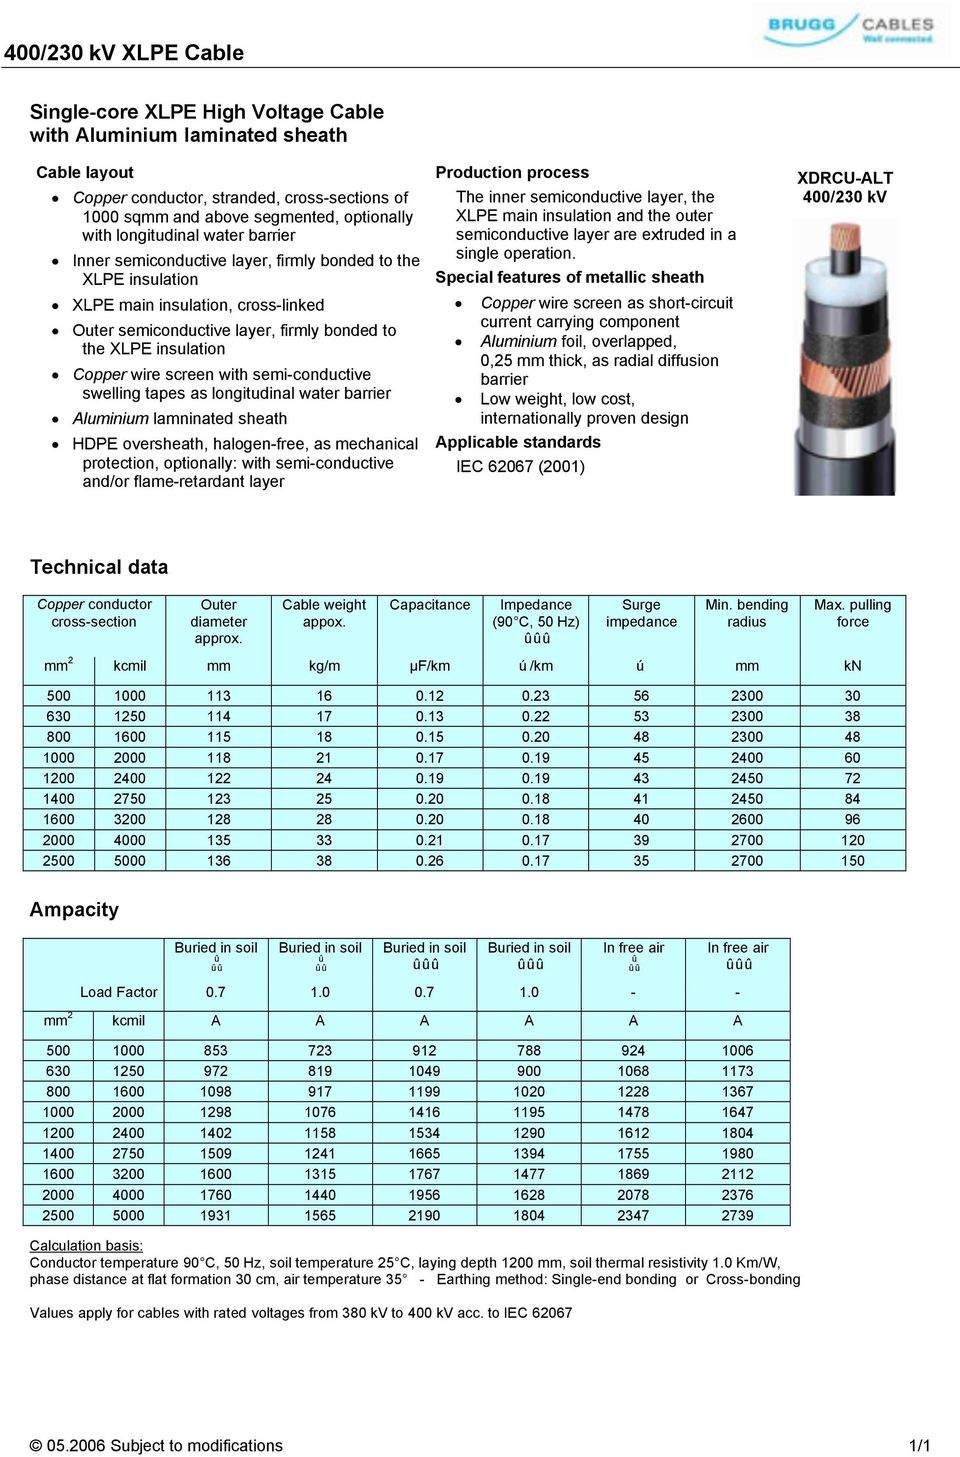 HIGH VOLTAGE XLPE CABLE SYSTEMS. Technical User Guide - PDF